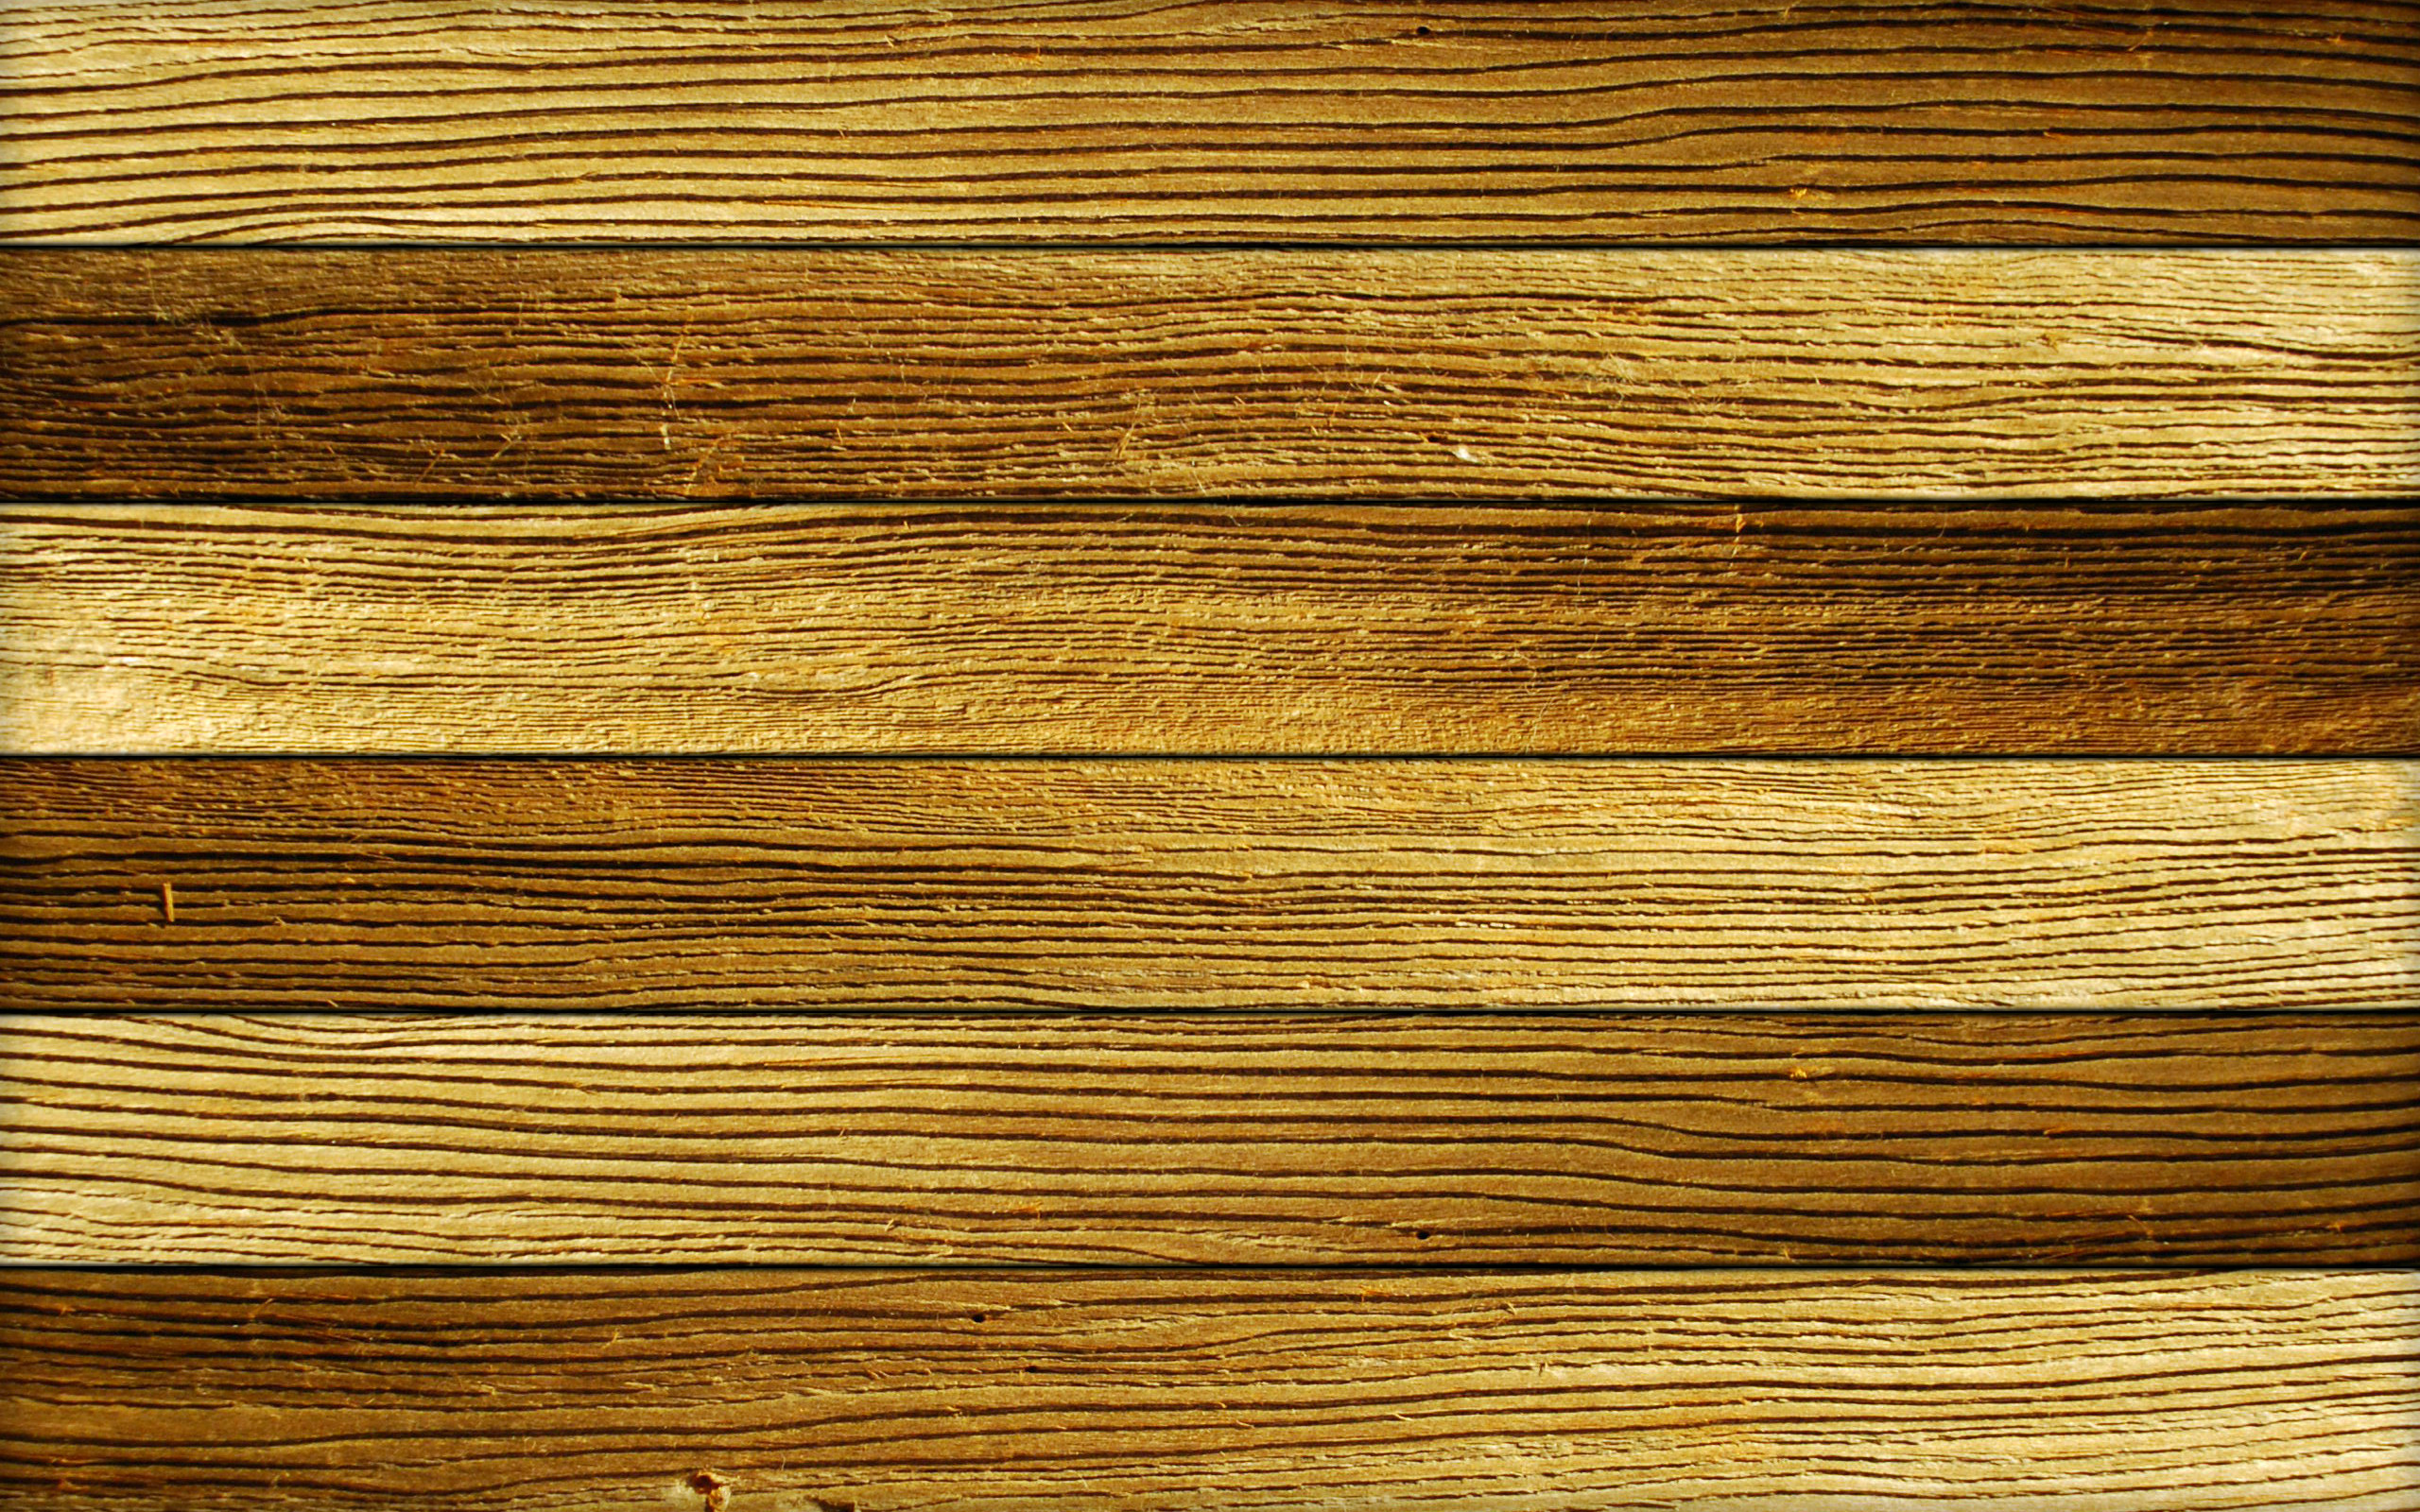 Weathered Wood Look Wallpaper (33+ images)